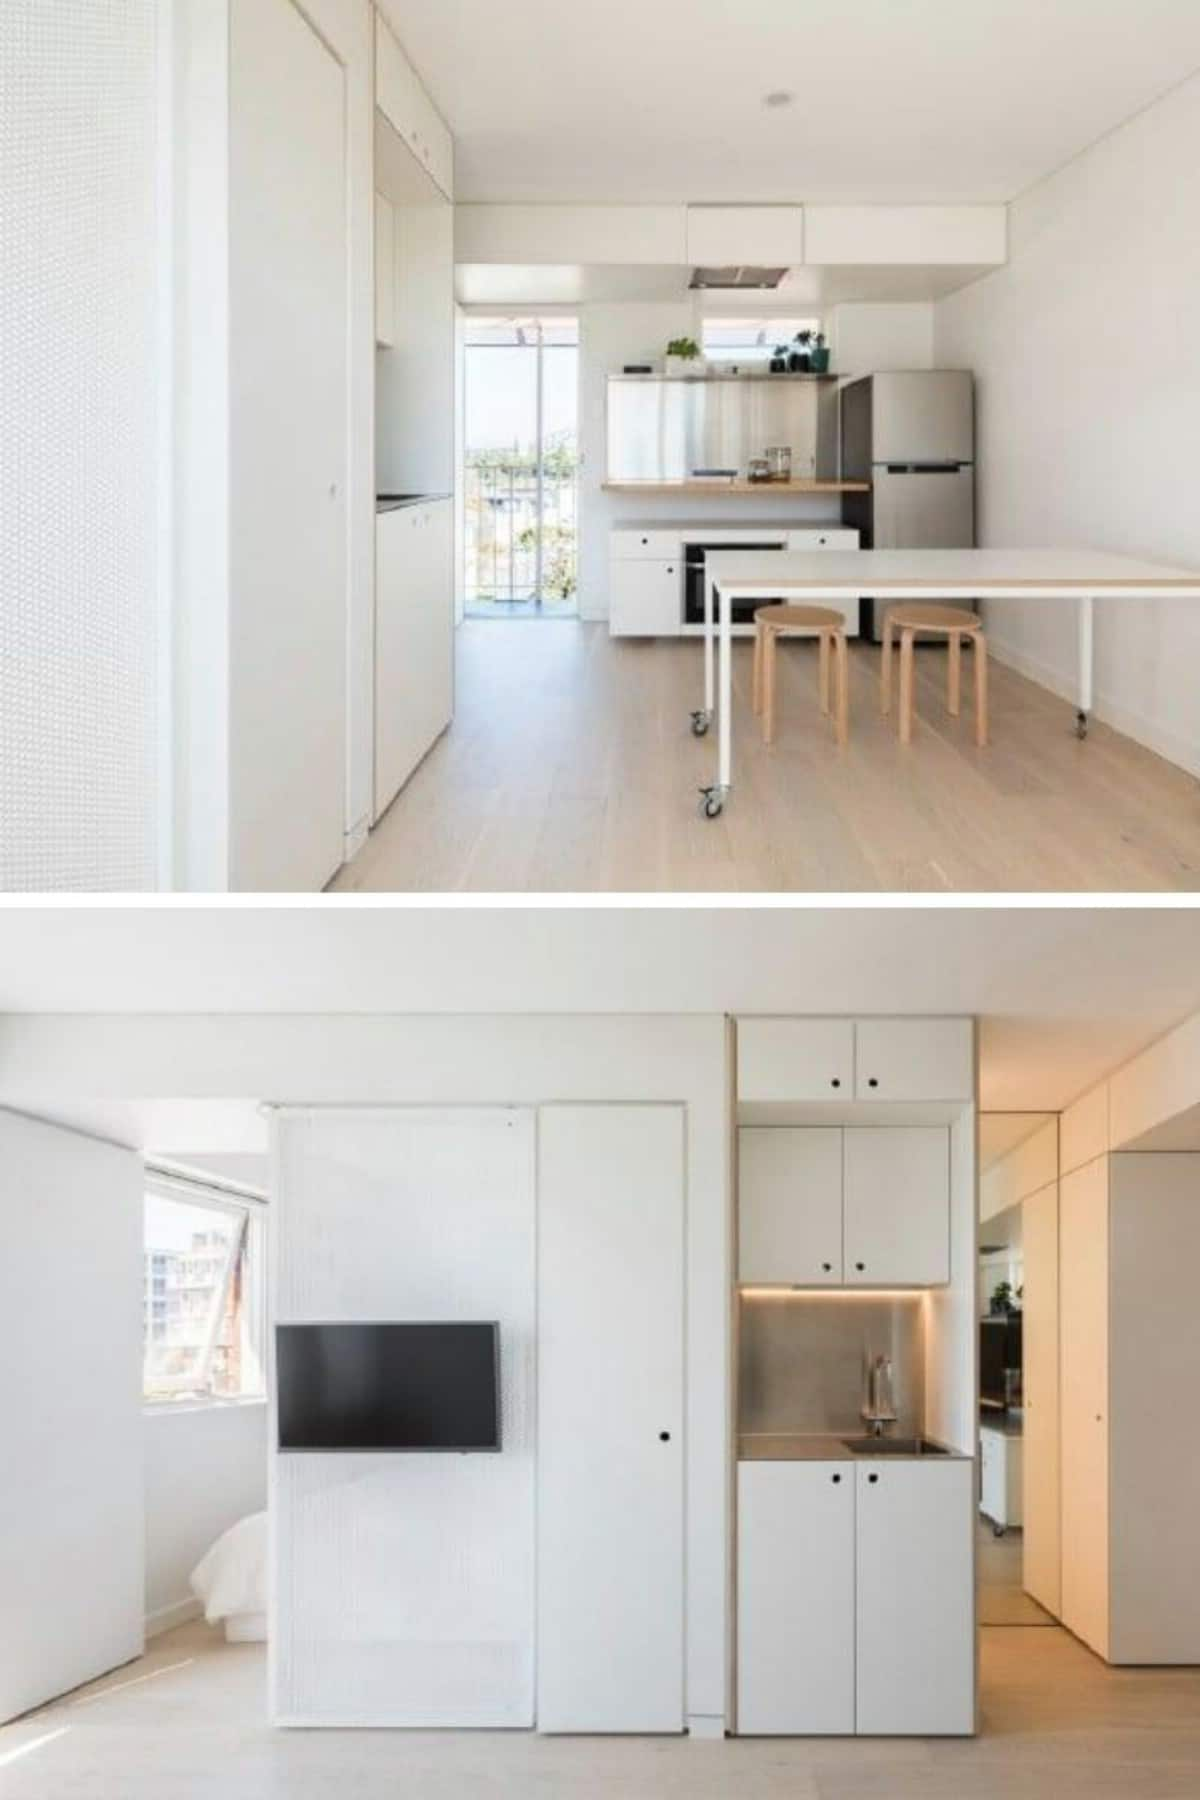 XS – SML 24 Square Meters